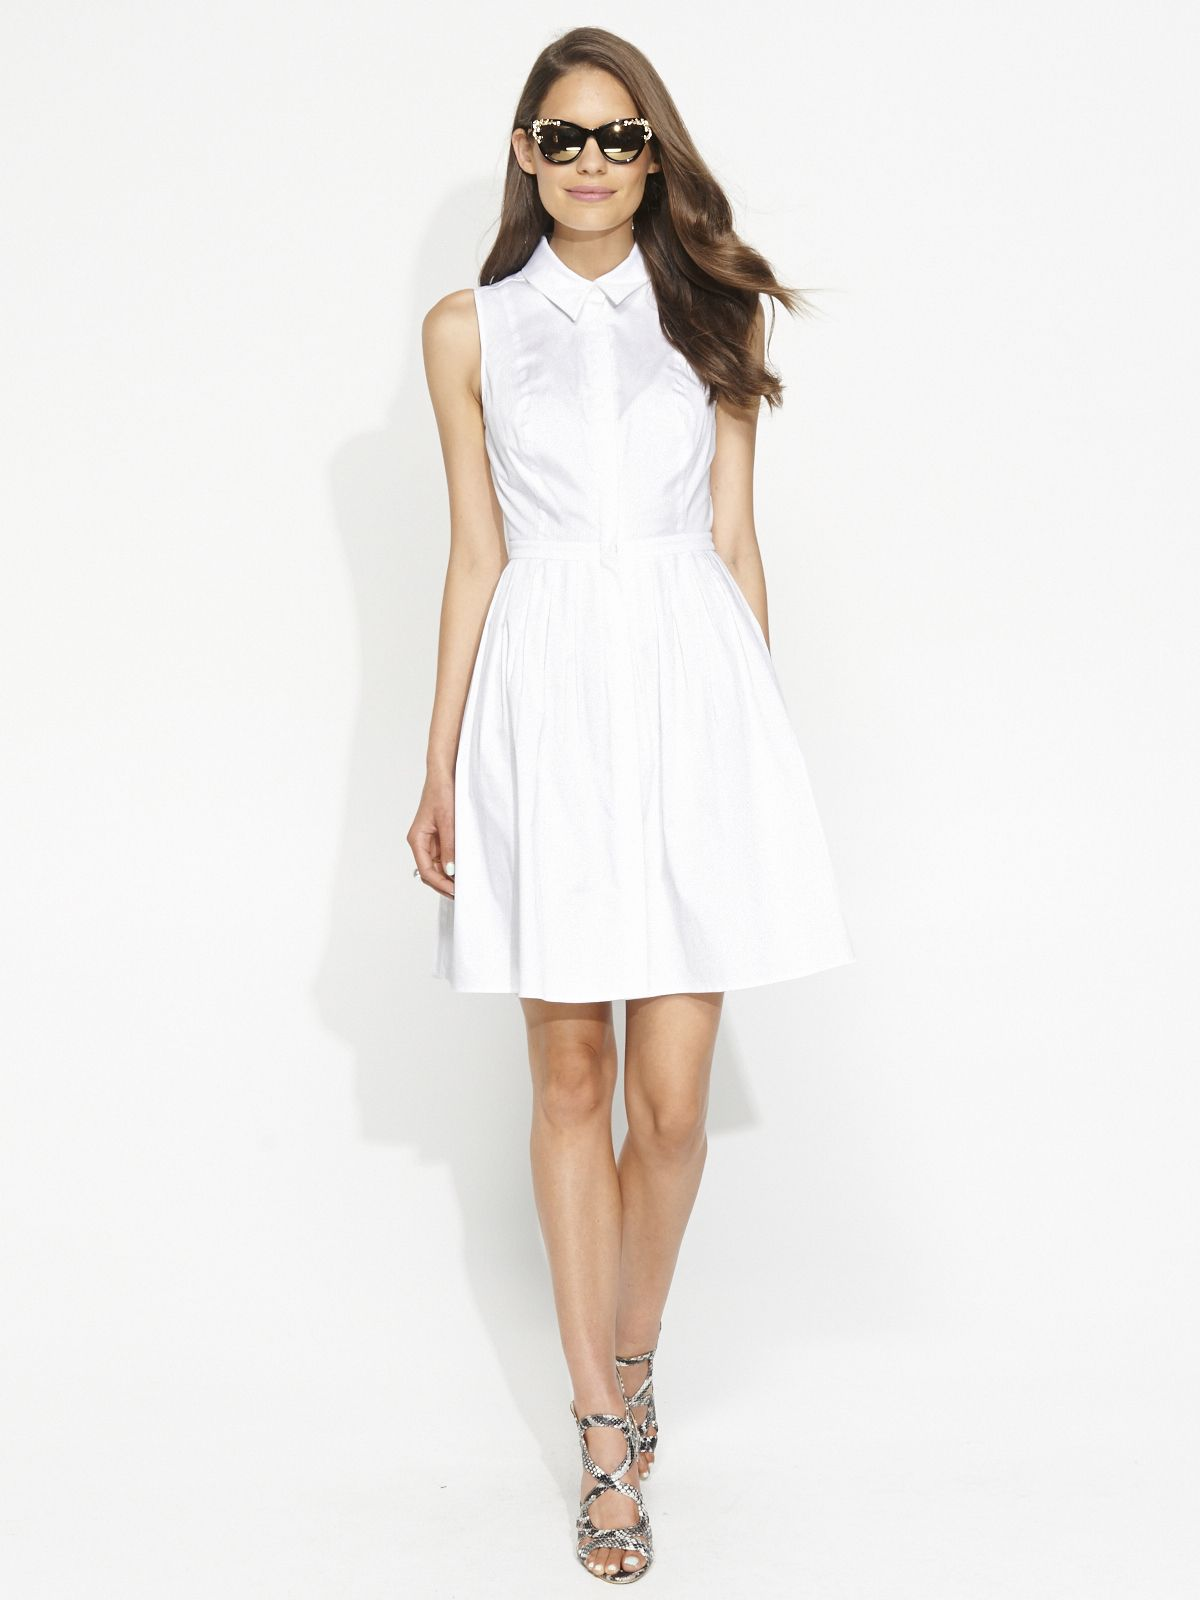 Image For Fit Flare Shirt Dress From Portmans Stylespiration